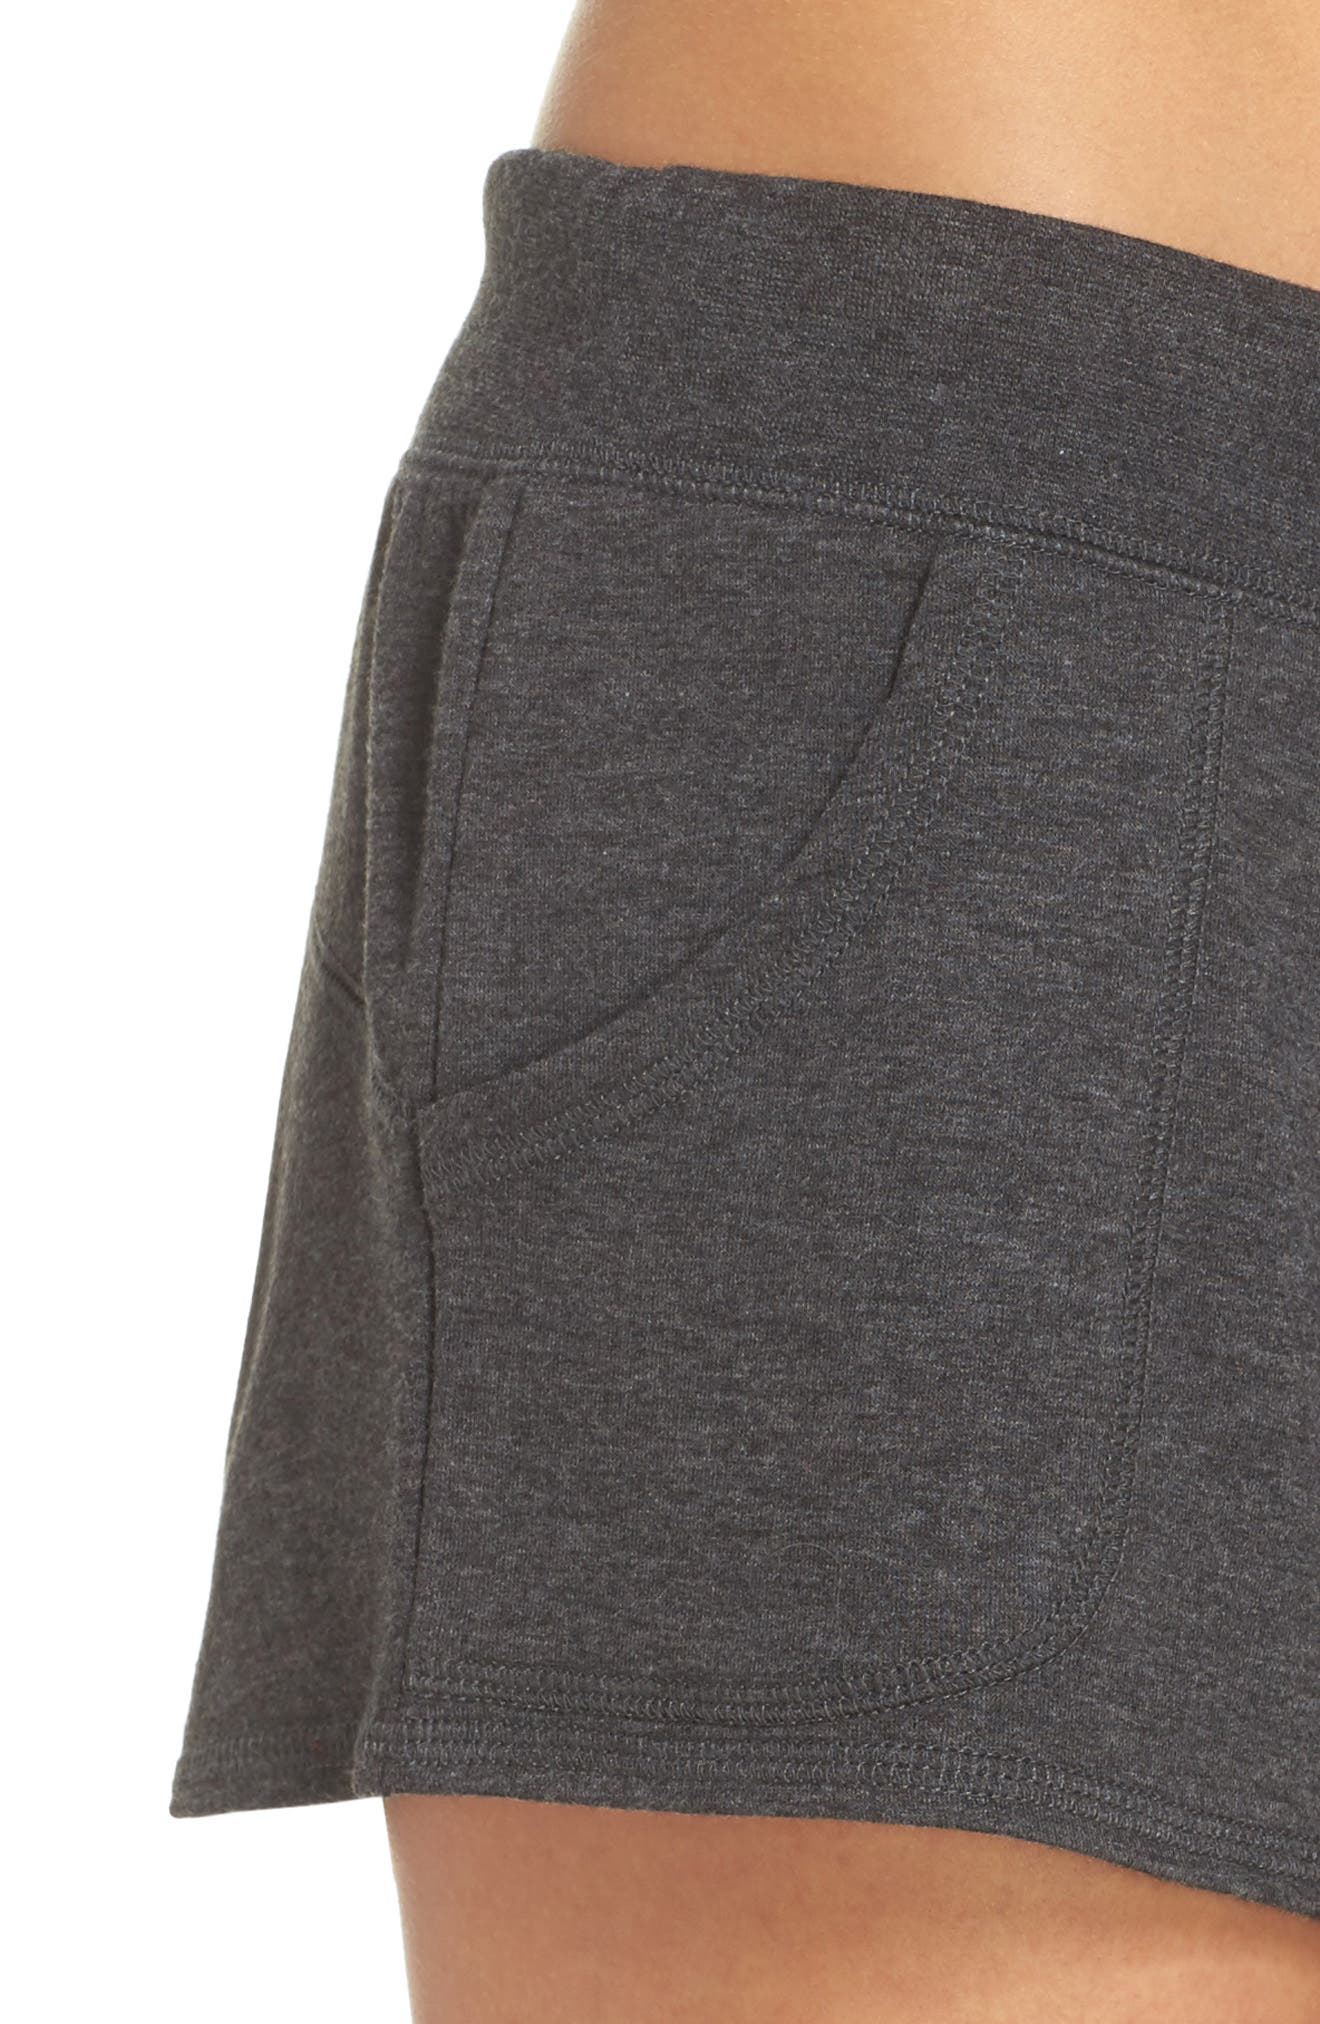 Down To The Details Lounge Shorts,                             Alternate thumbnail 4, color,                             030